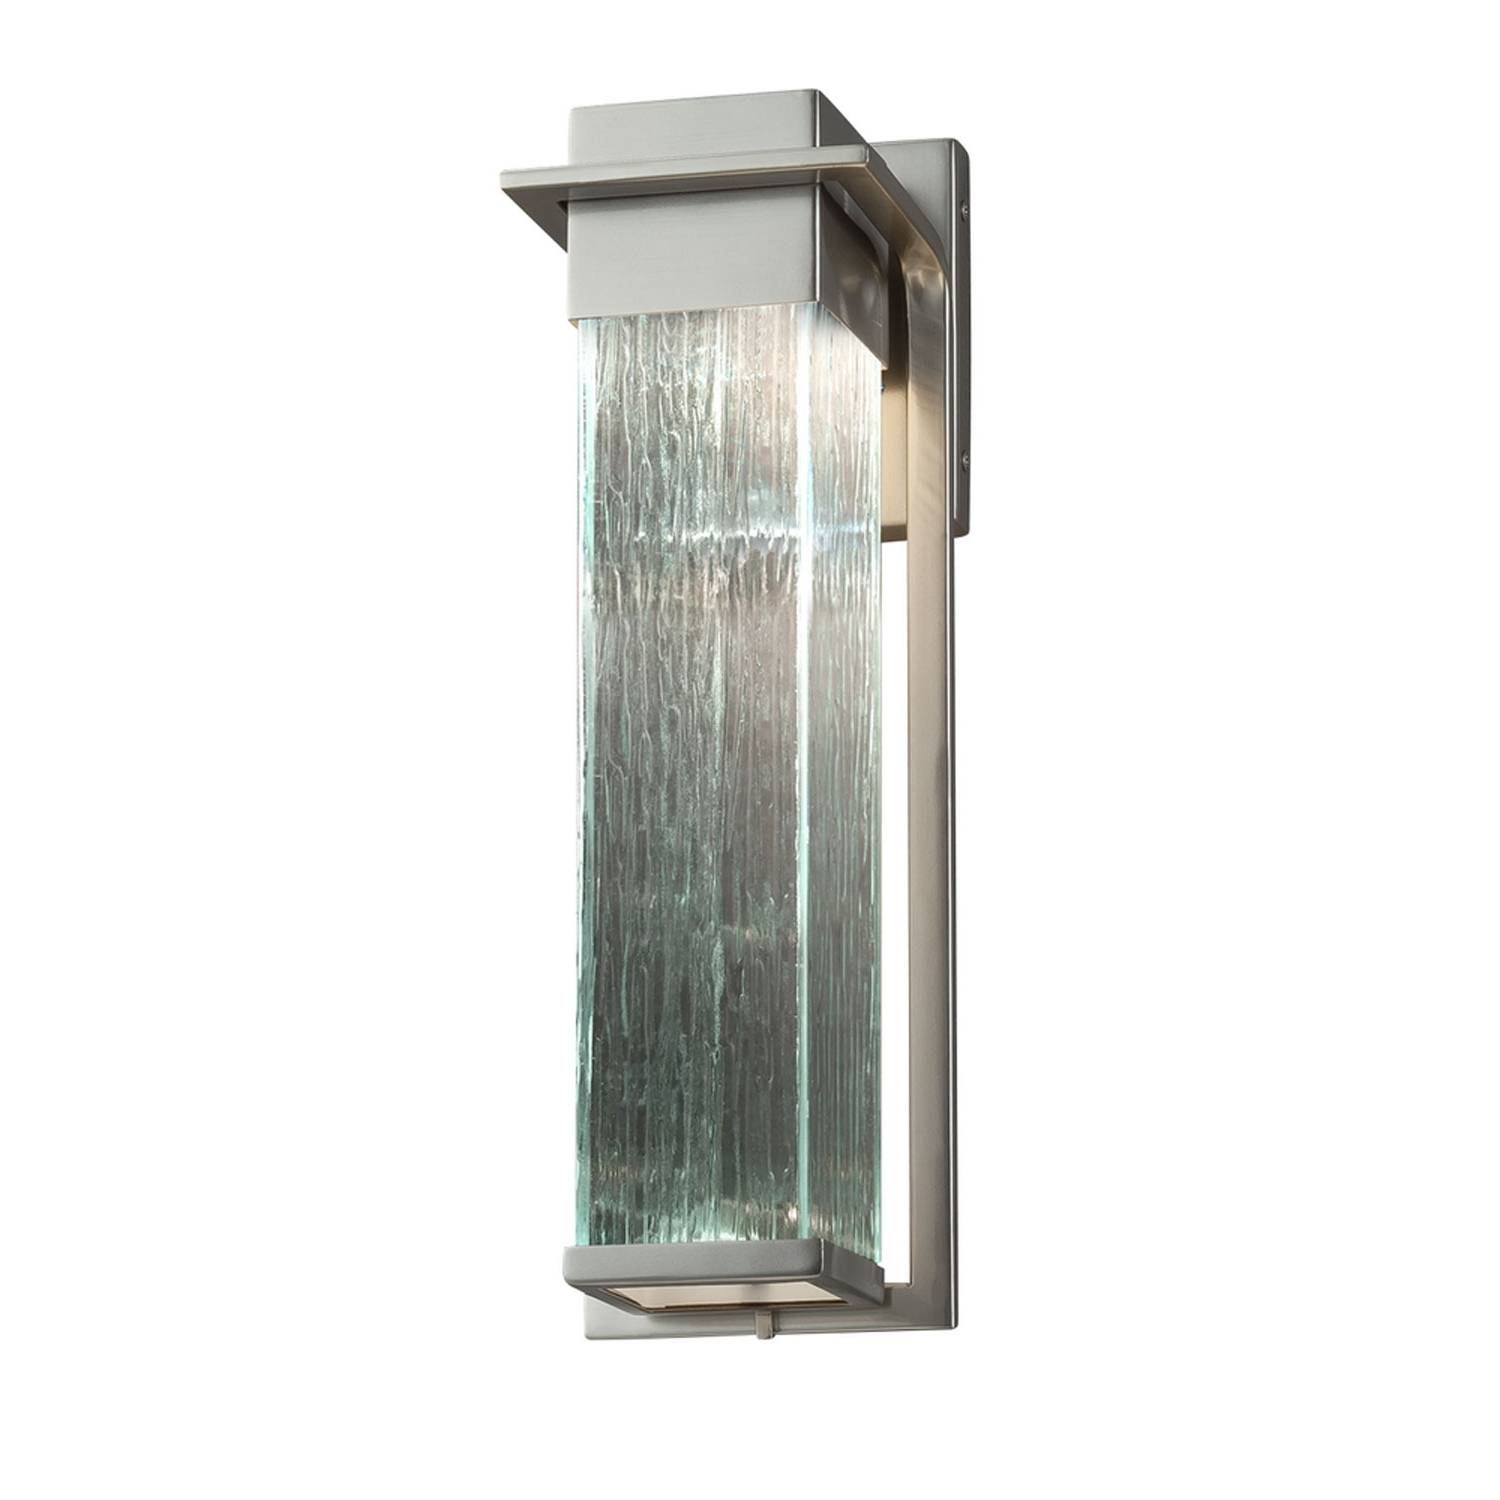 Brushed Nickel Outdoor Ceiling Lights With Well Known Fusion Pacific Brushed Nickel Led Outdoor Wall Sconce With Rain (View 6 of 20)